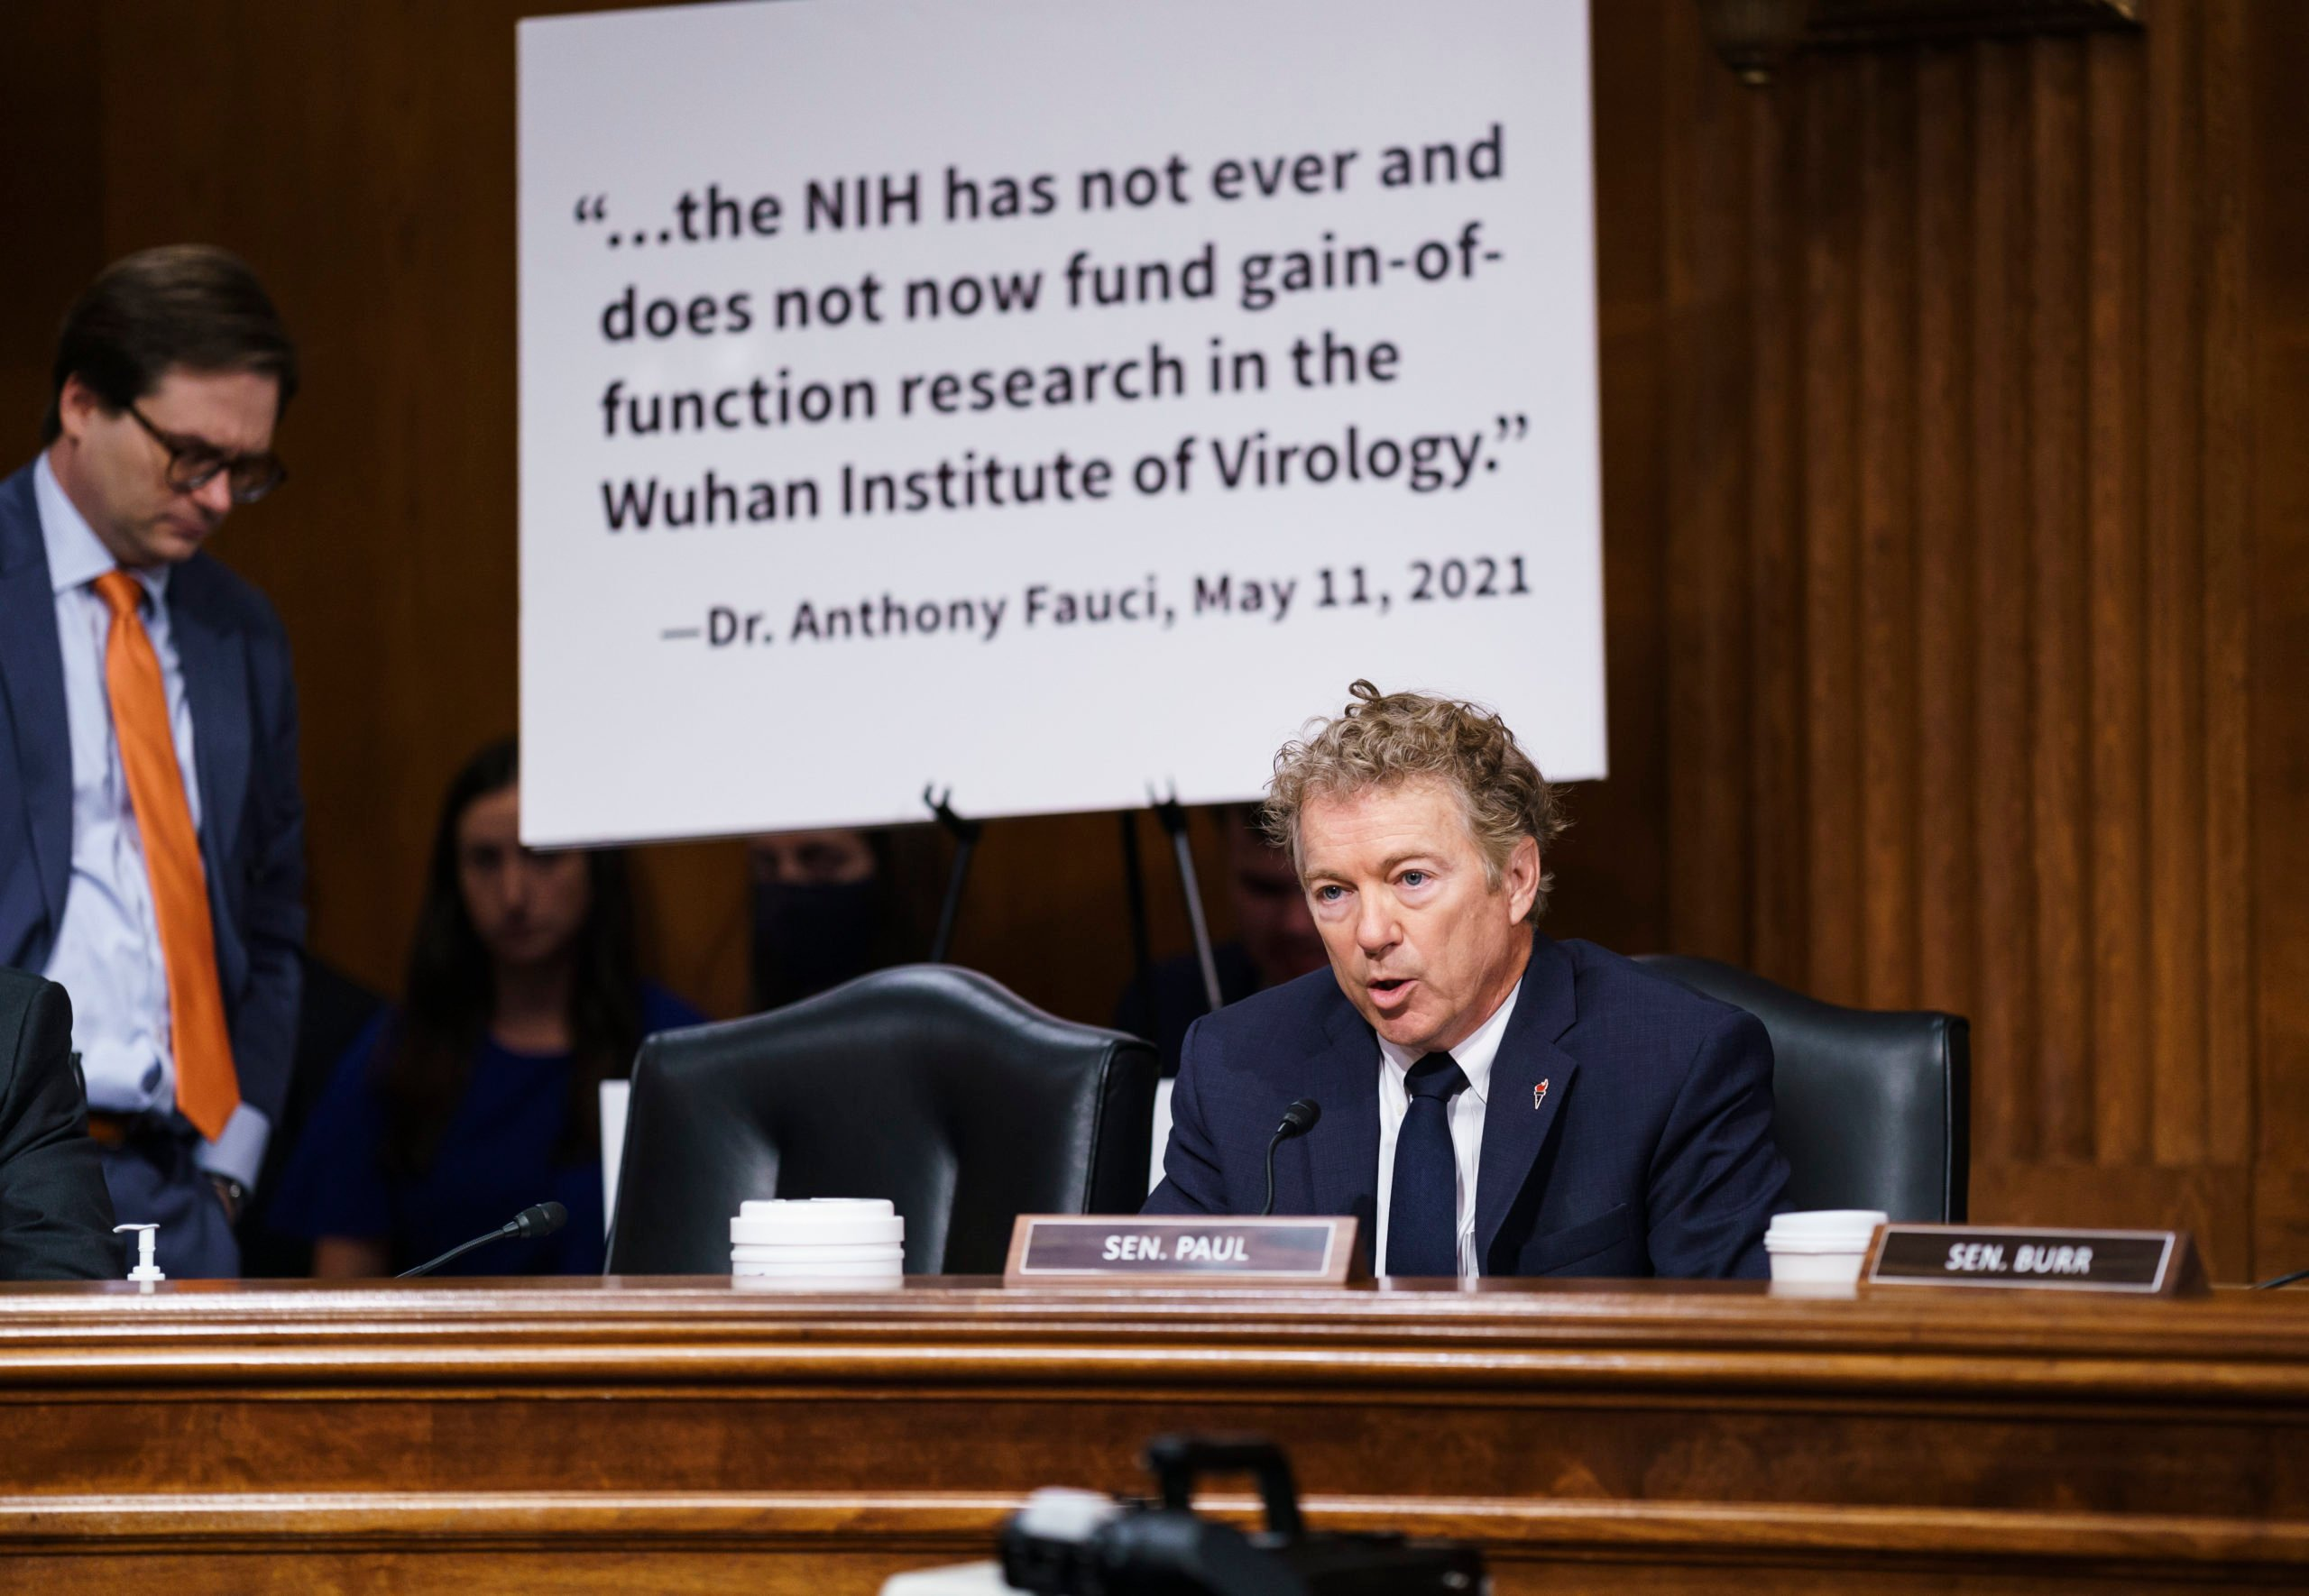 Sen. Rand Paul questions top infectious disease expert Dr. Anthony Fauci during a Senate Health, Education, Labor, and Pensions Committee hearing, July 20, 2021 on Capitol Hill in Washington, DC. (Photo by J. Scott Applewhite-Pool/Getty Images)